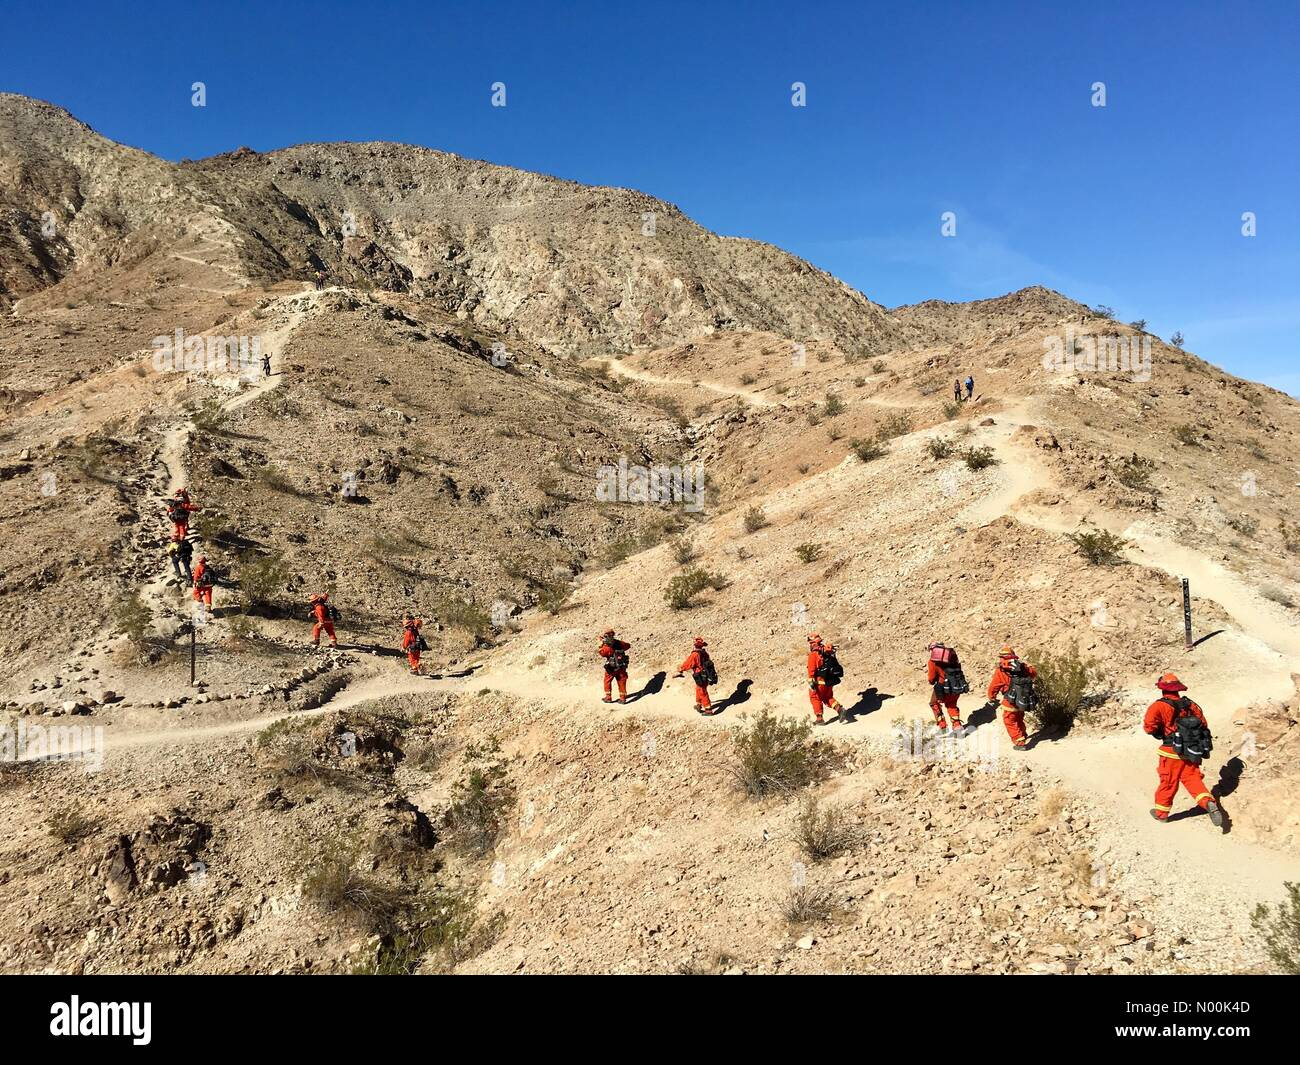 Palm Desert, California USA 26 January 2018 Prison inmates from the Oak Glen Conservation Camp in Yucaipa, California - Stock Image